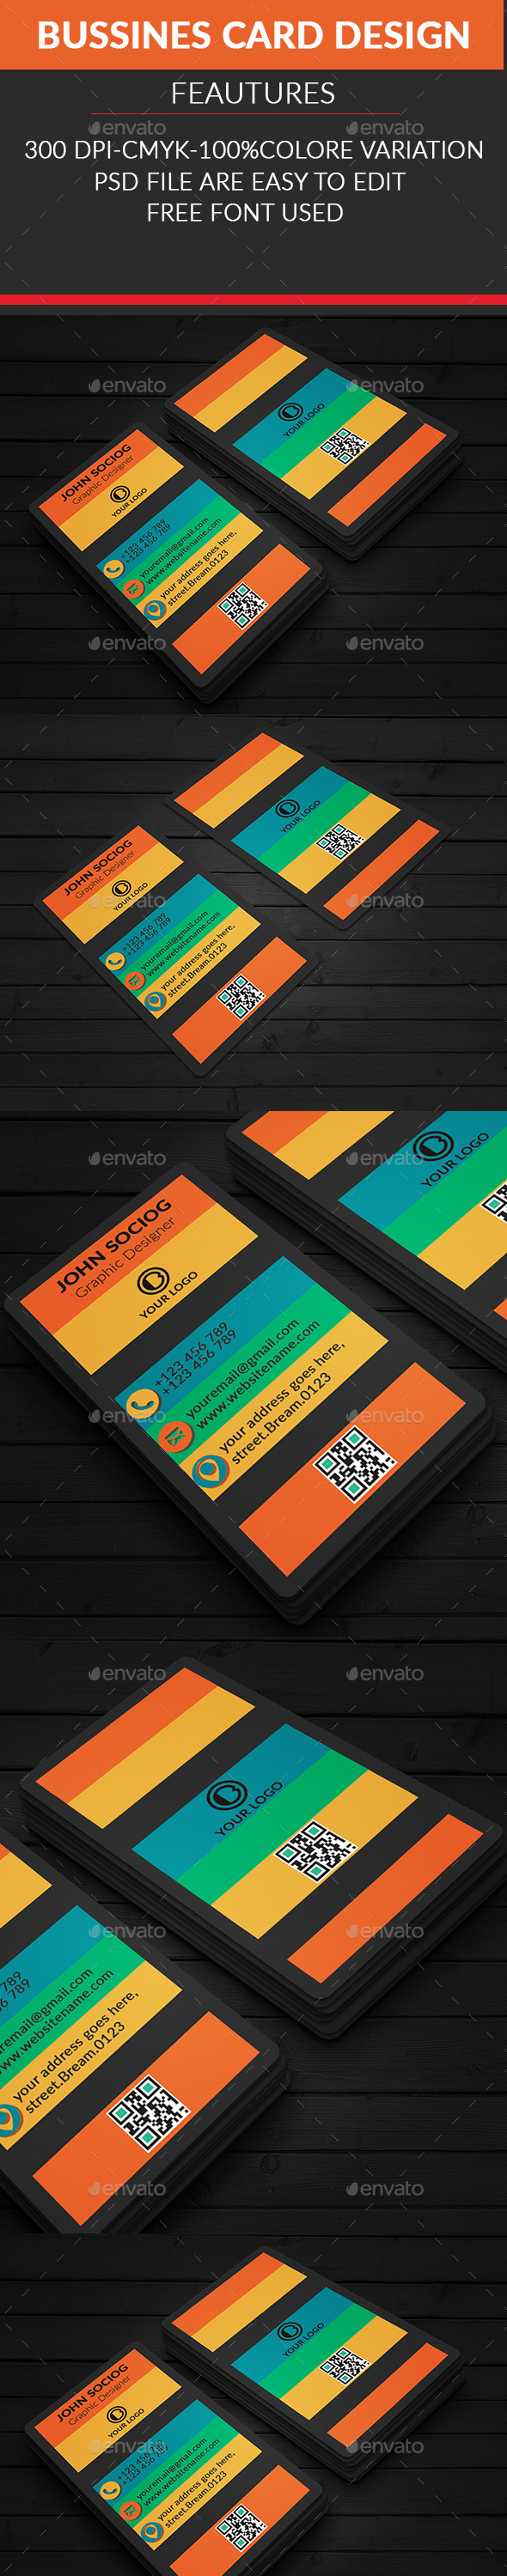 Colorfull Business Card - Business Cards Print Templates